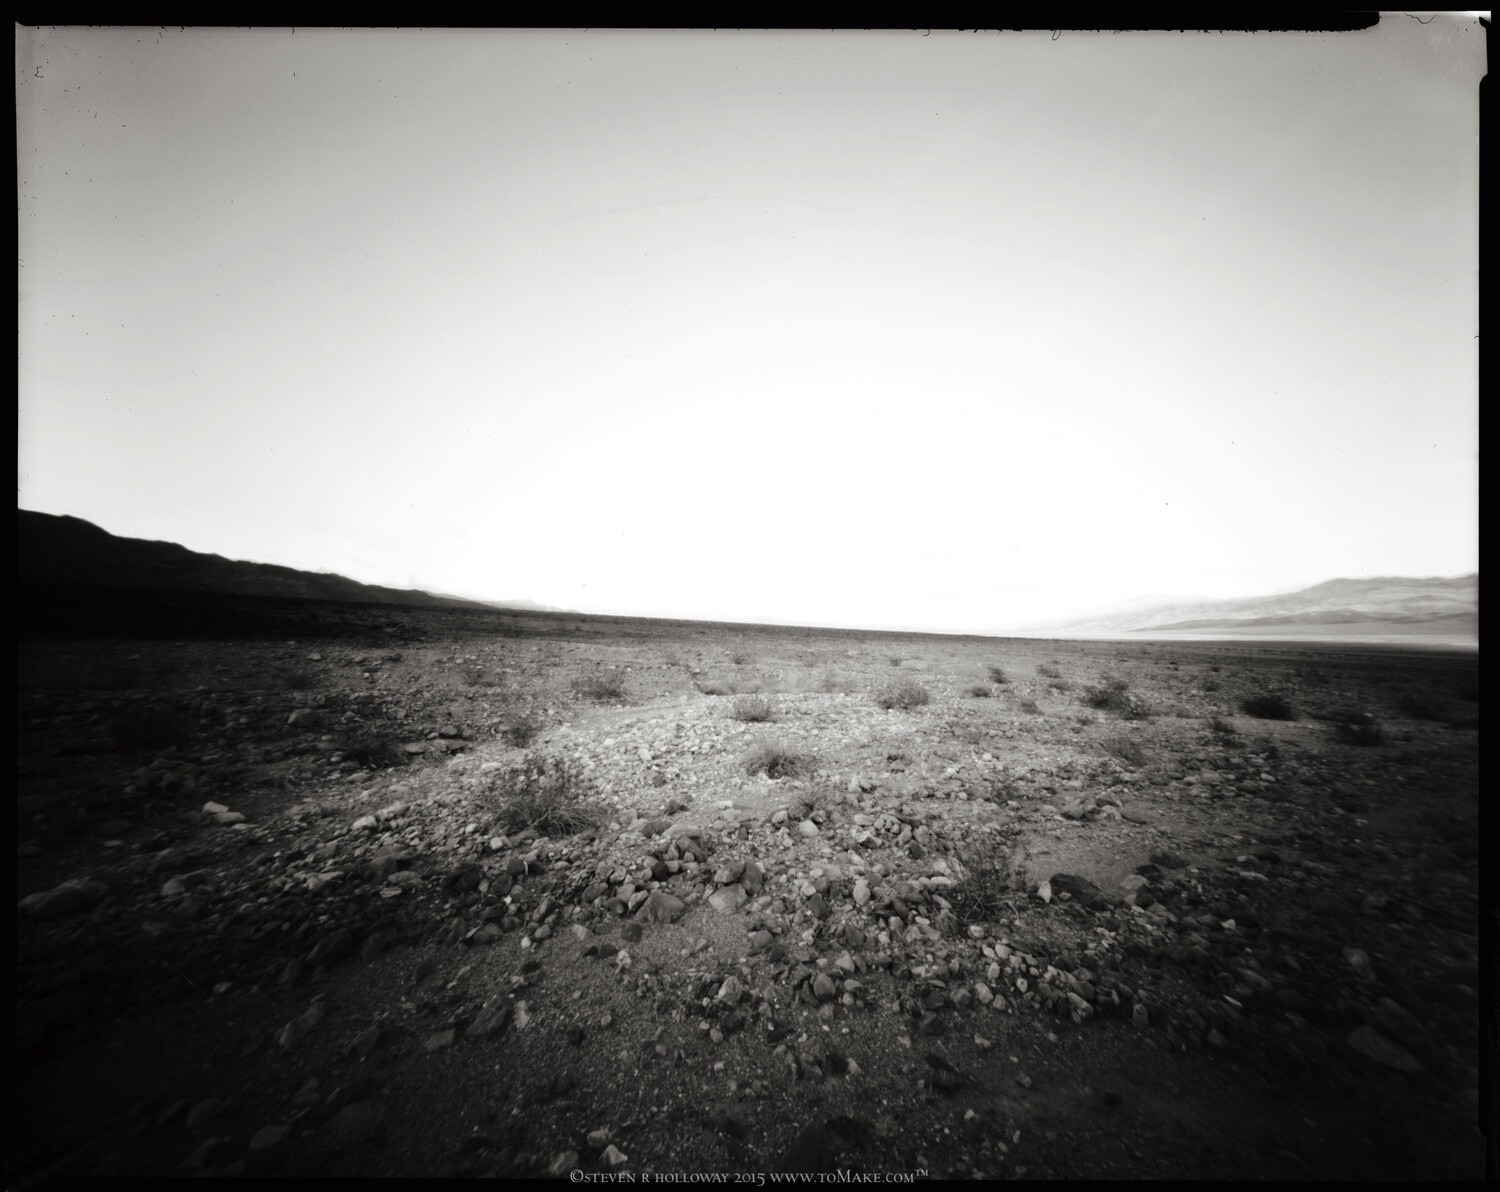 Pinhole Images: Trail Canyon Playa